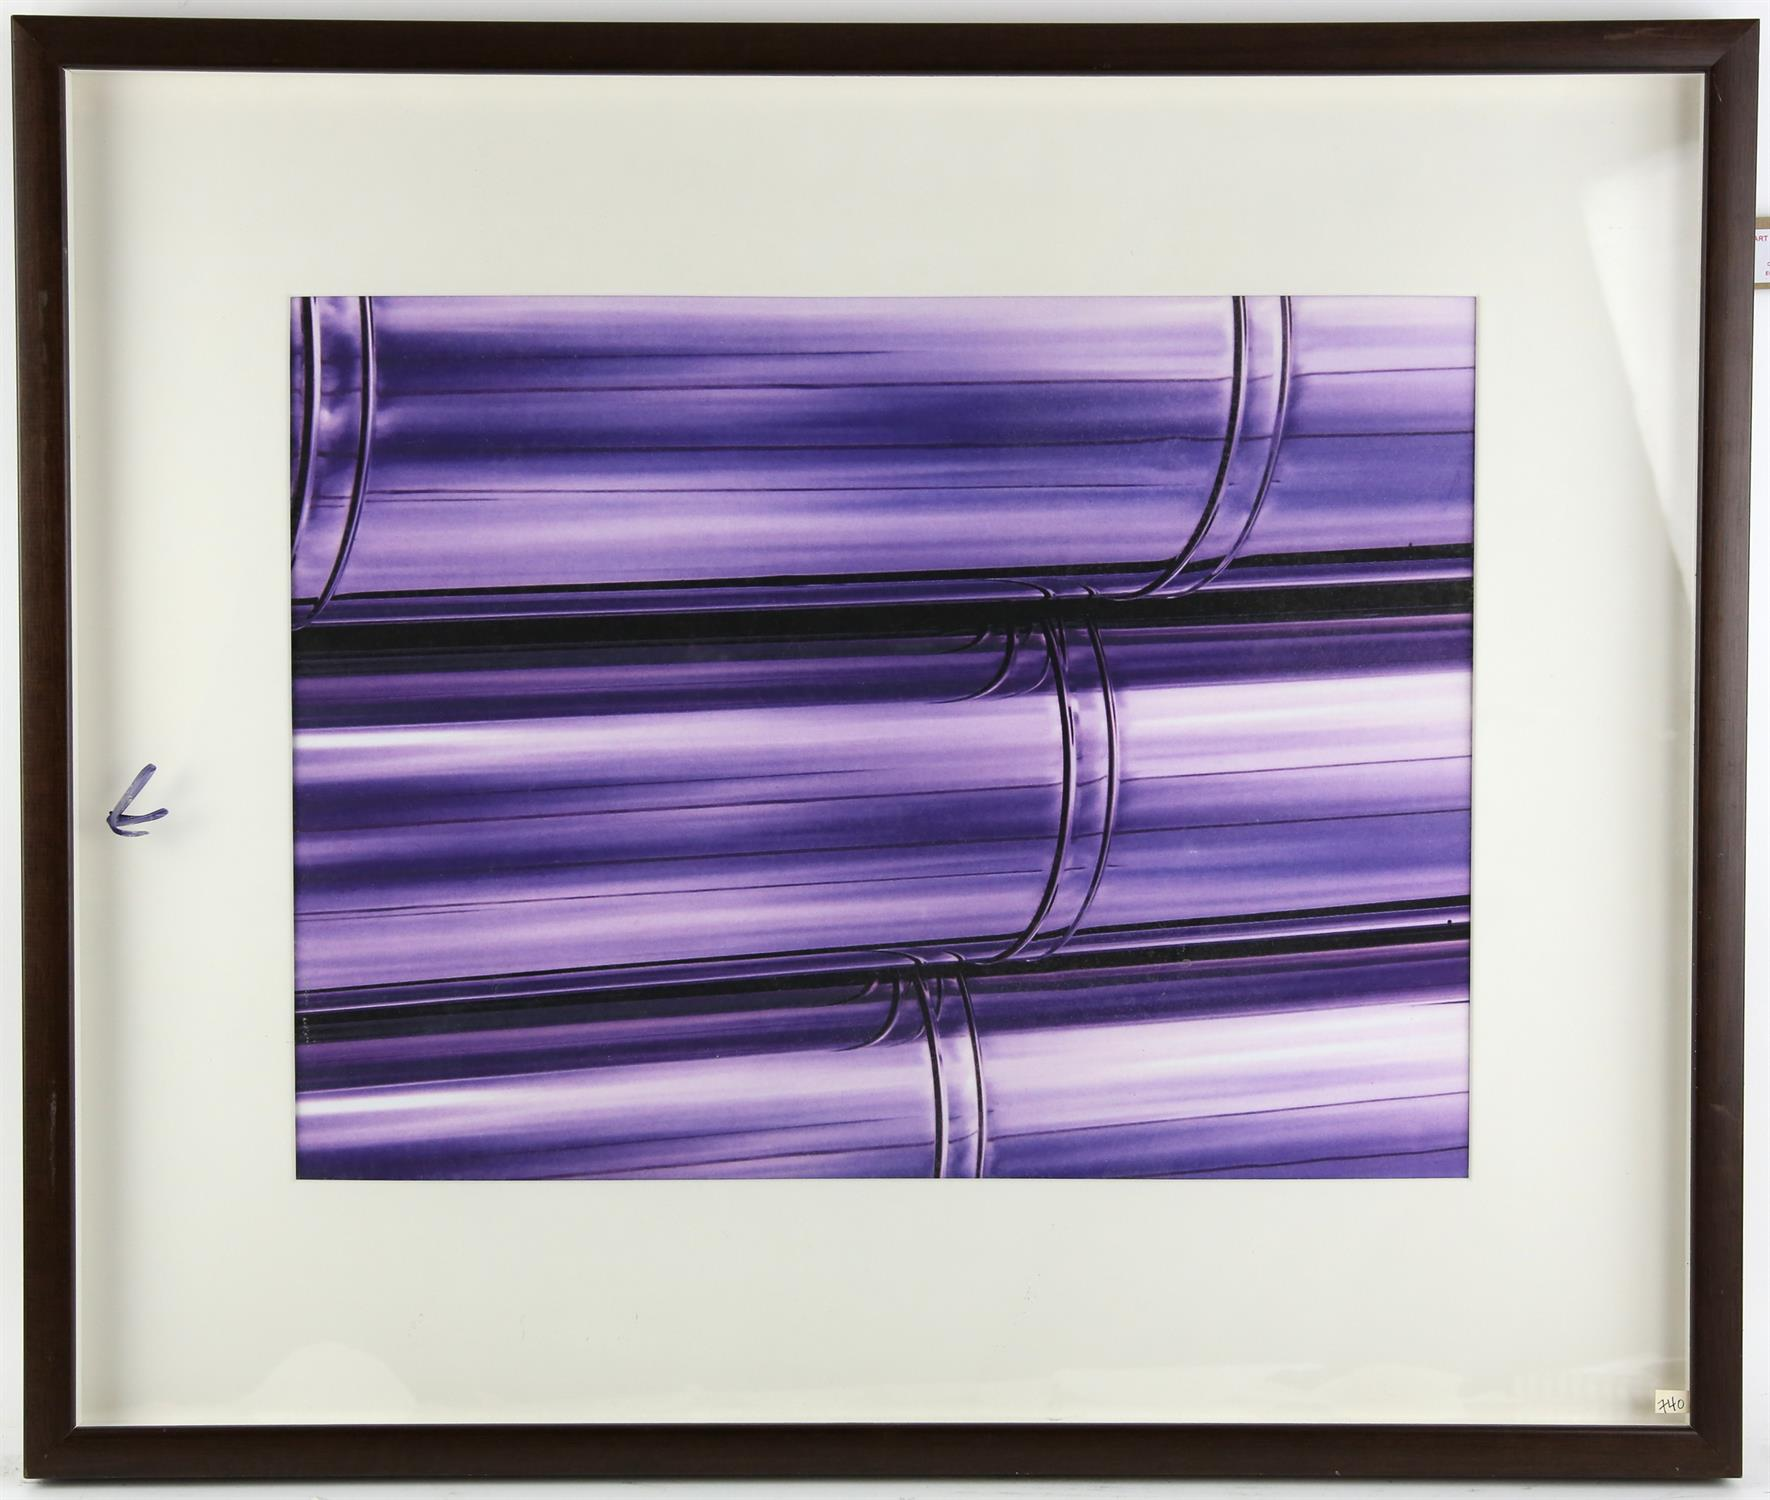 Lever, 'Chrome Stacks'. Three abstract lithographs in purple. Image size 35 x 46cm each. - Image 2 of 2